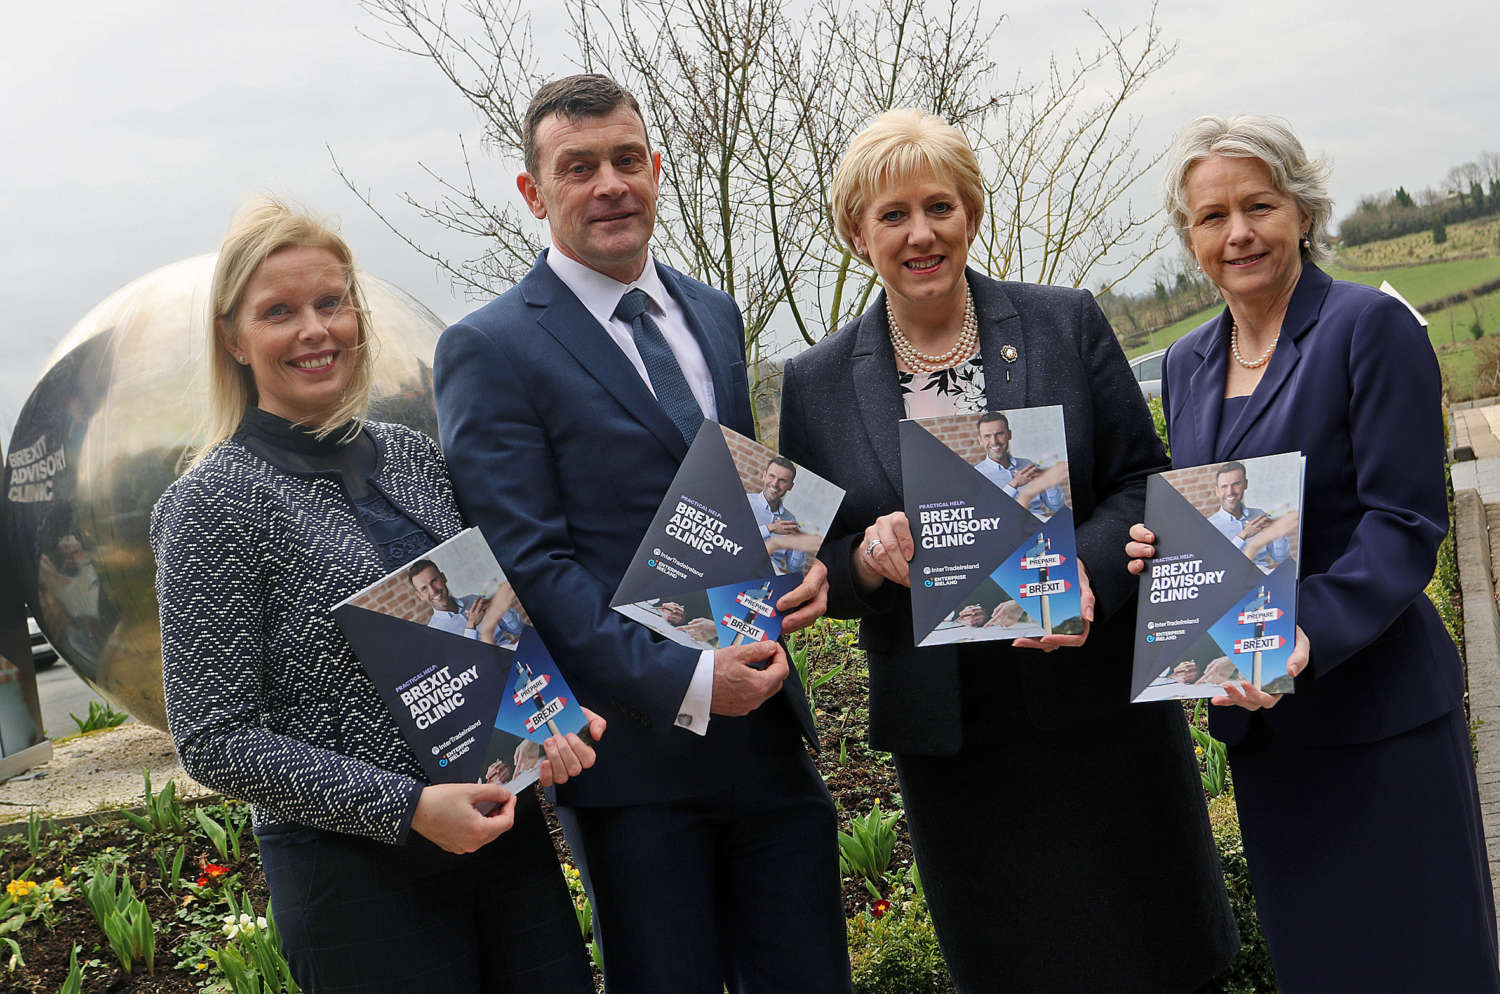 Enterprise Ireland and Inter Trade Ireland bring Practical Help Brexit Advisory Clinic to Cootehill